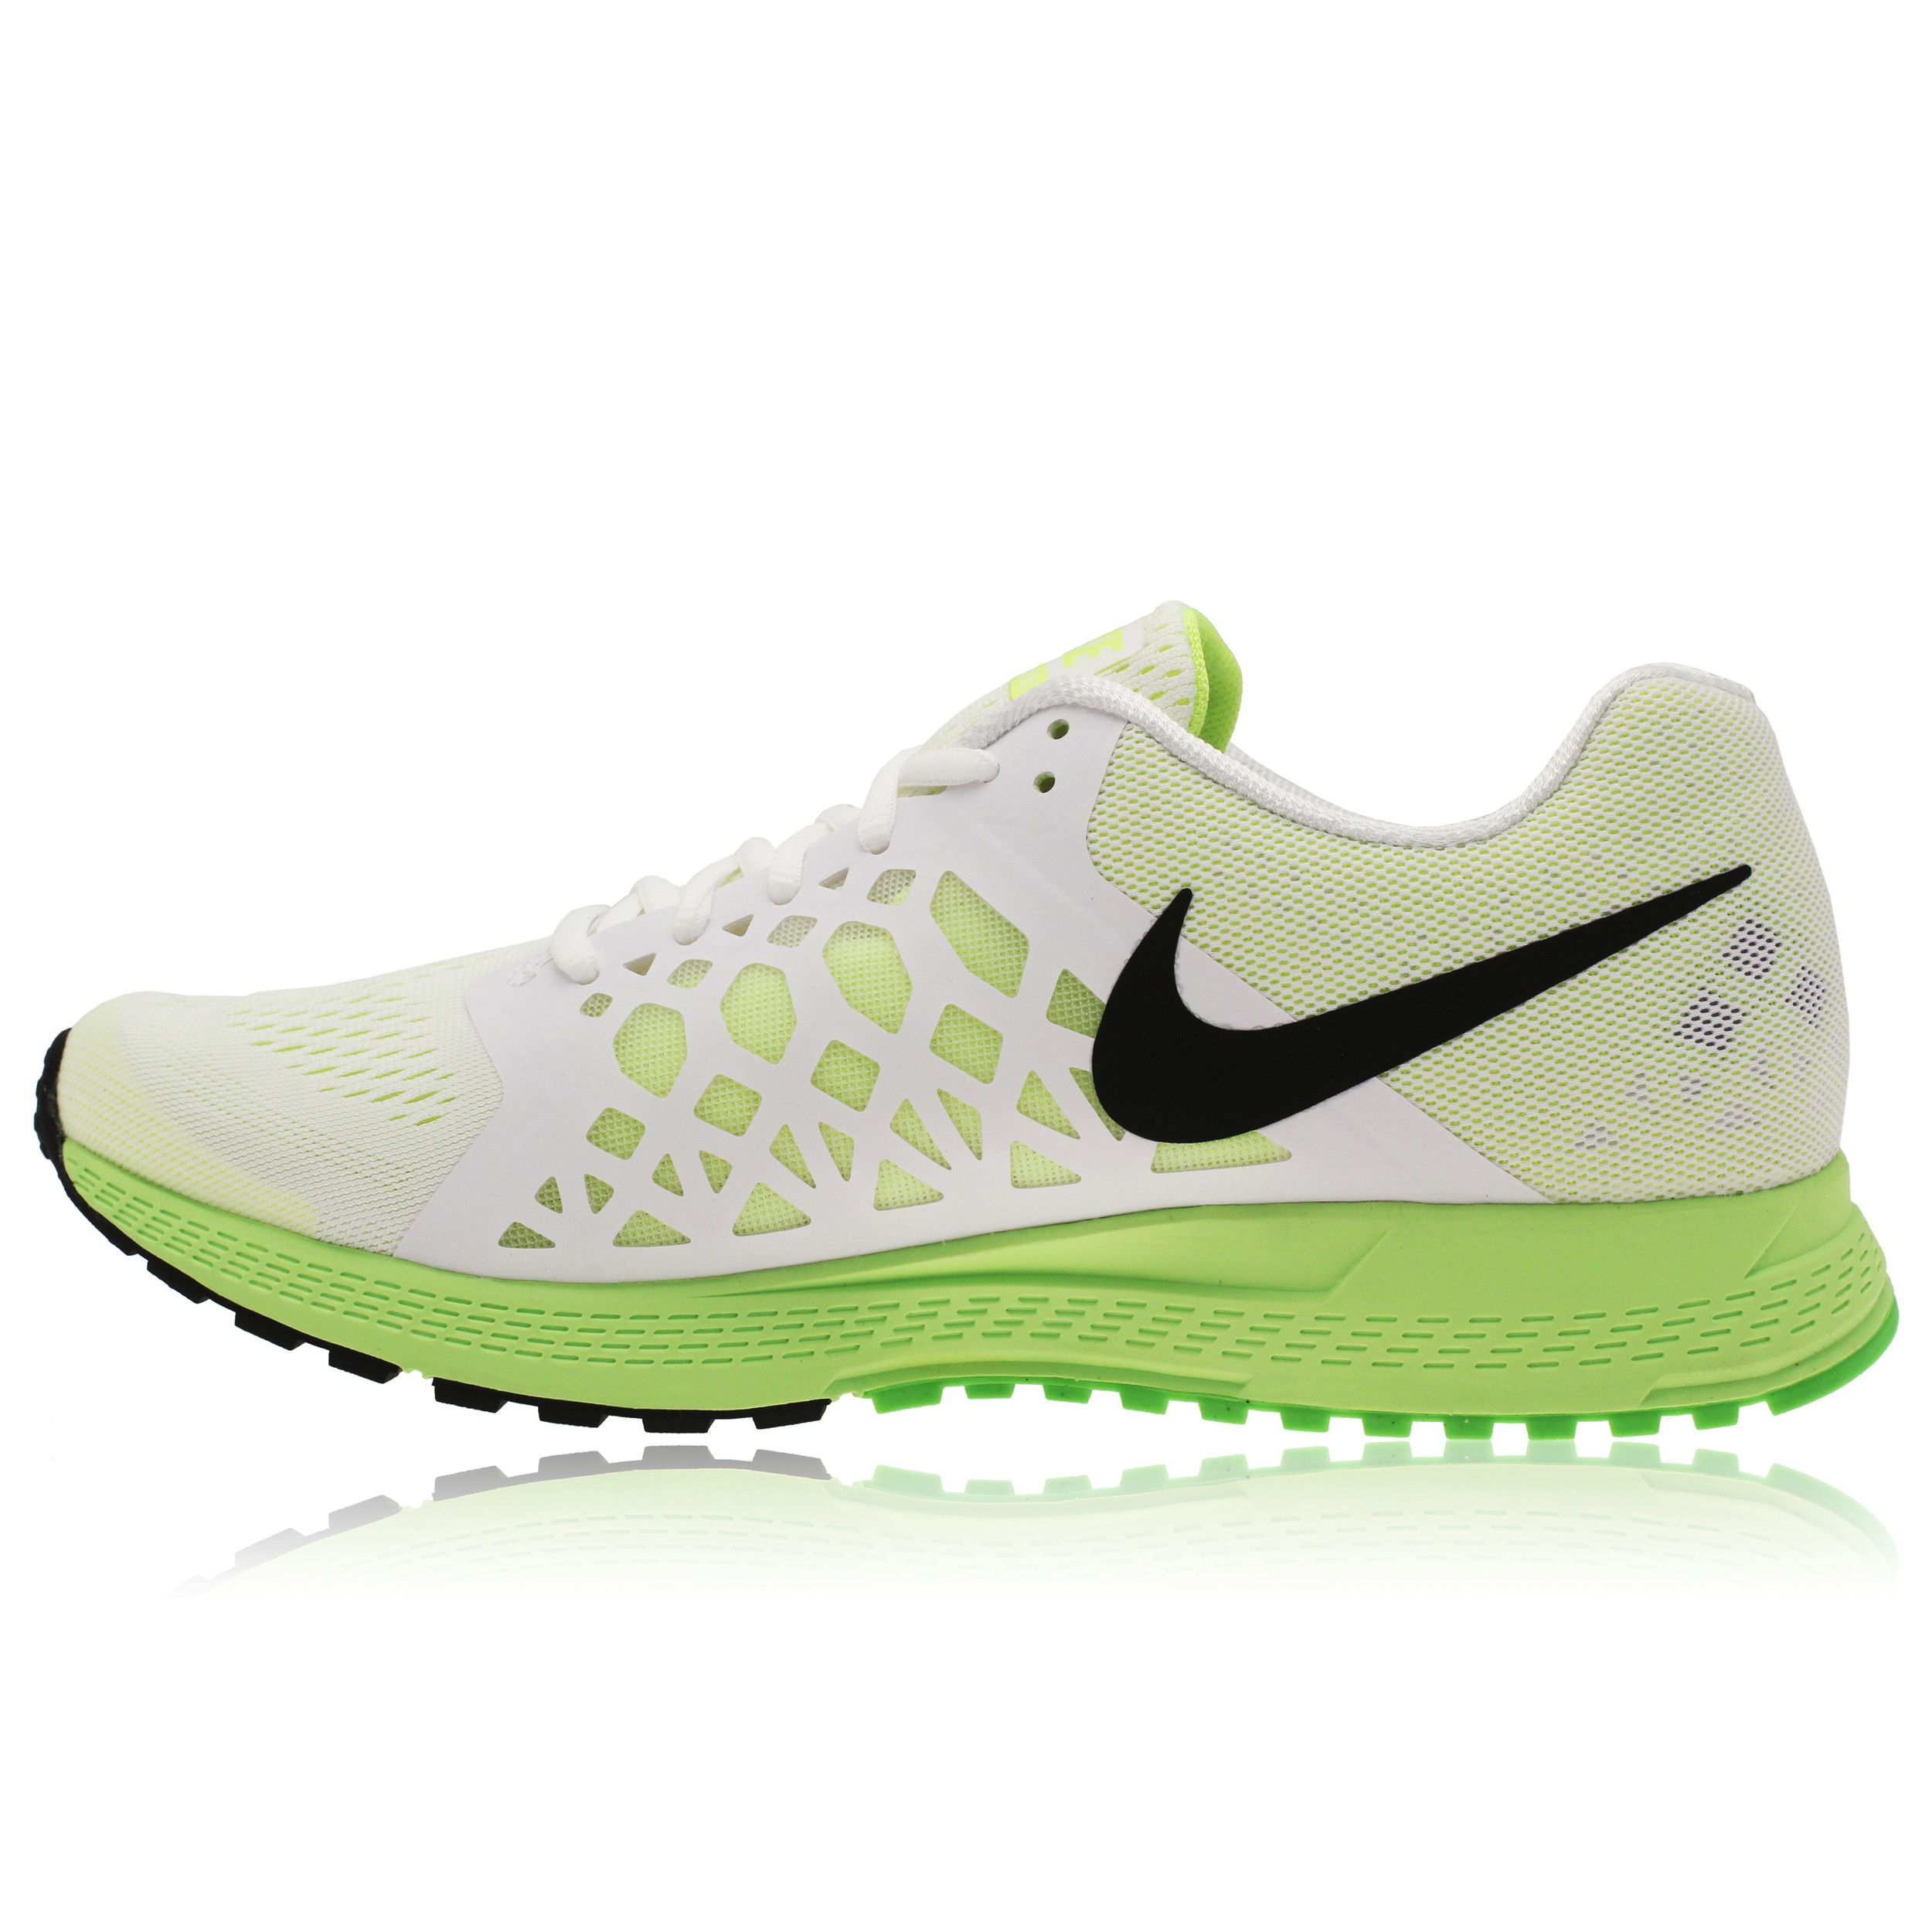 nike mens zoom pegasus 31 oregon project running shoes christmas